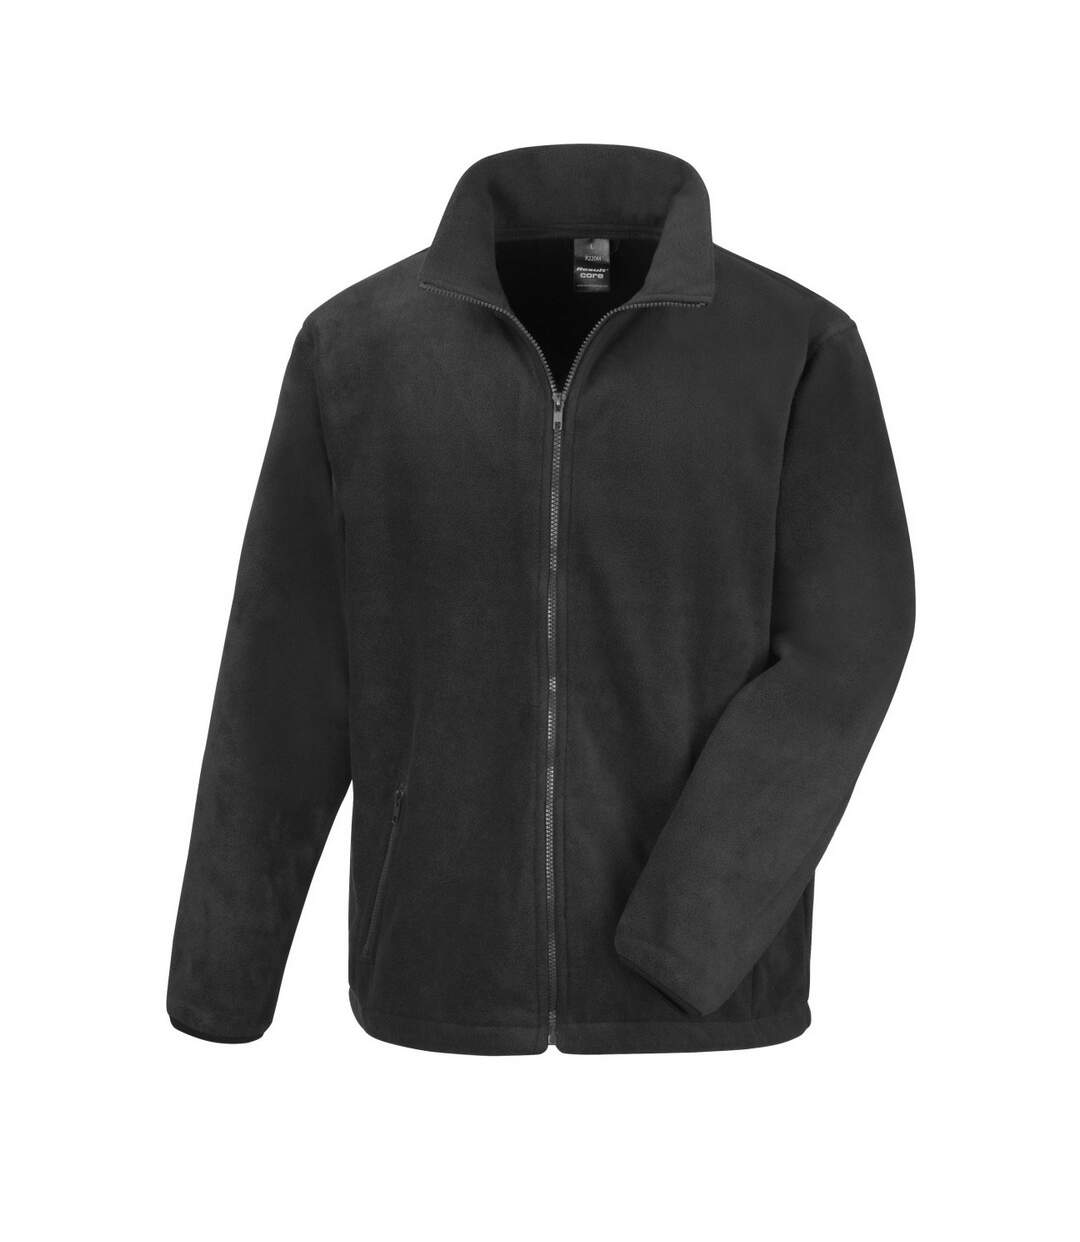 Result Mens Core Fashion Fit Outdoor Fleece Jacket (Black) - UTBC912